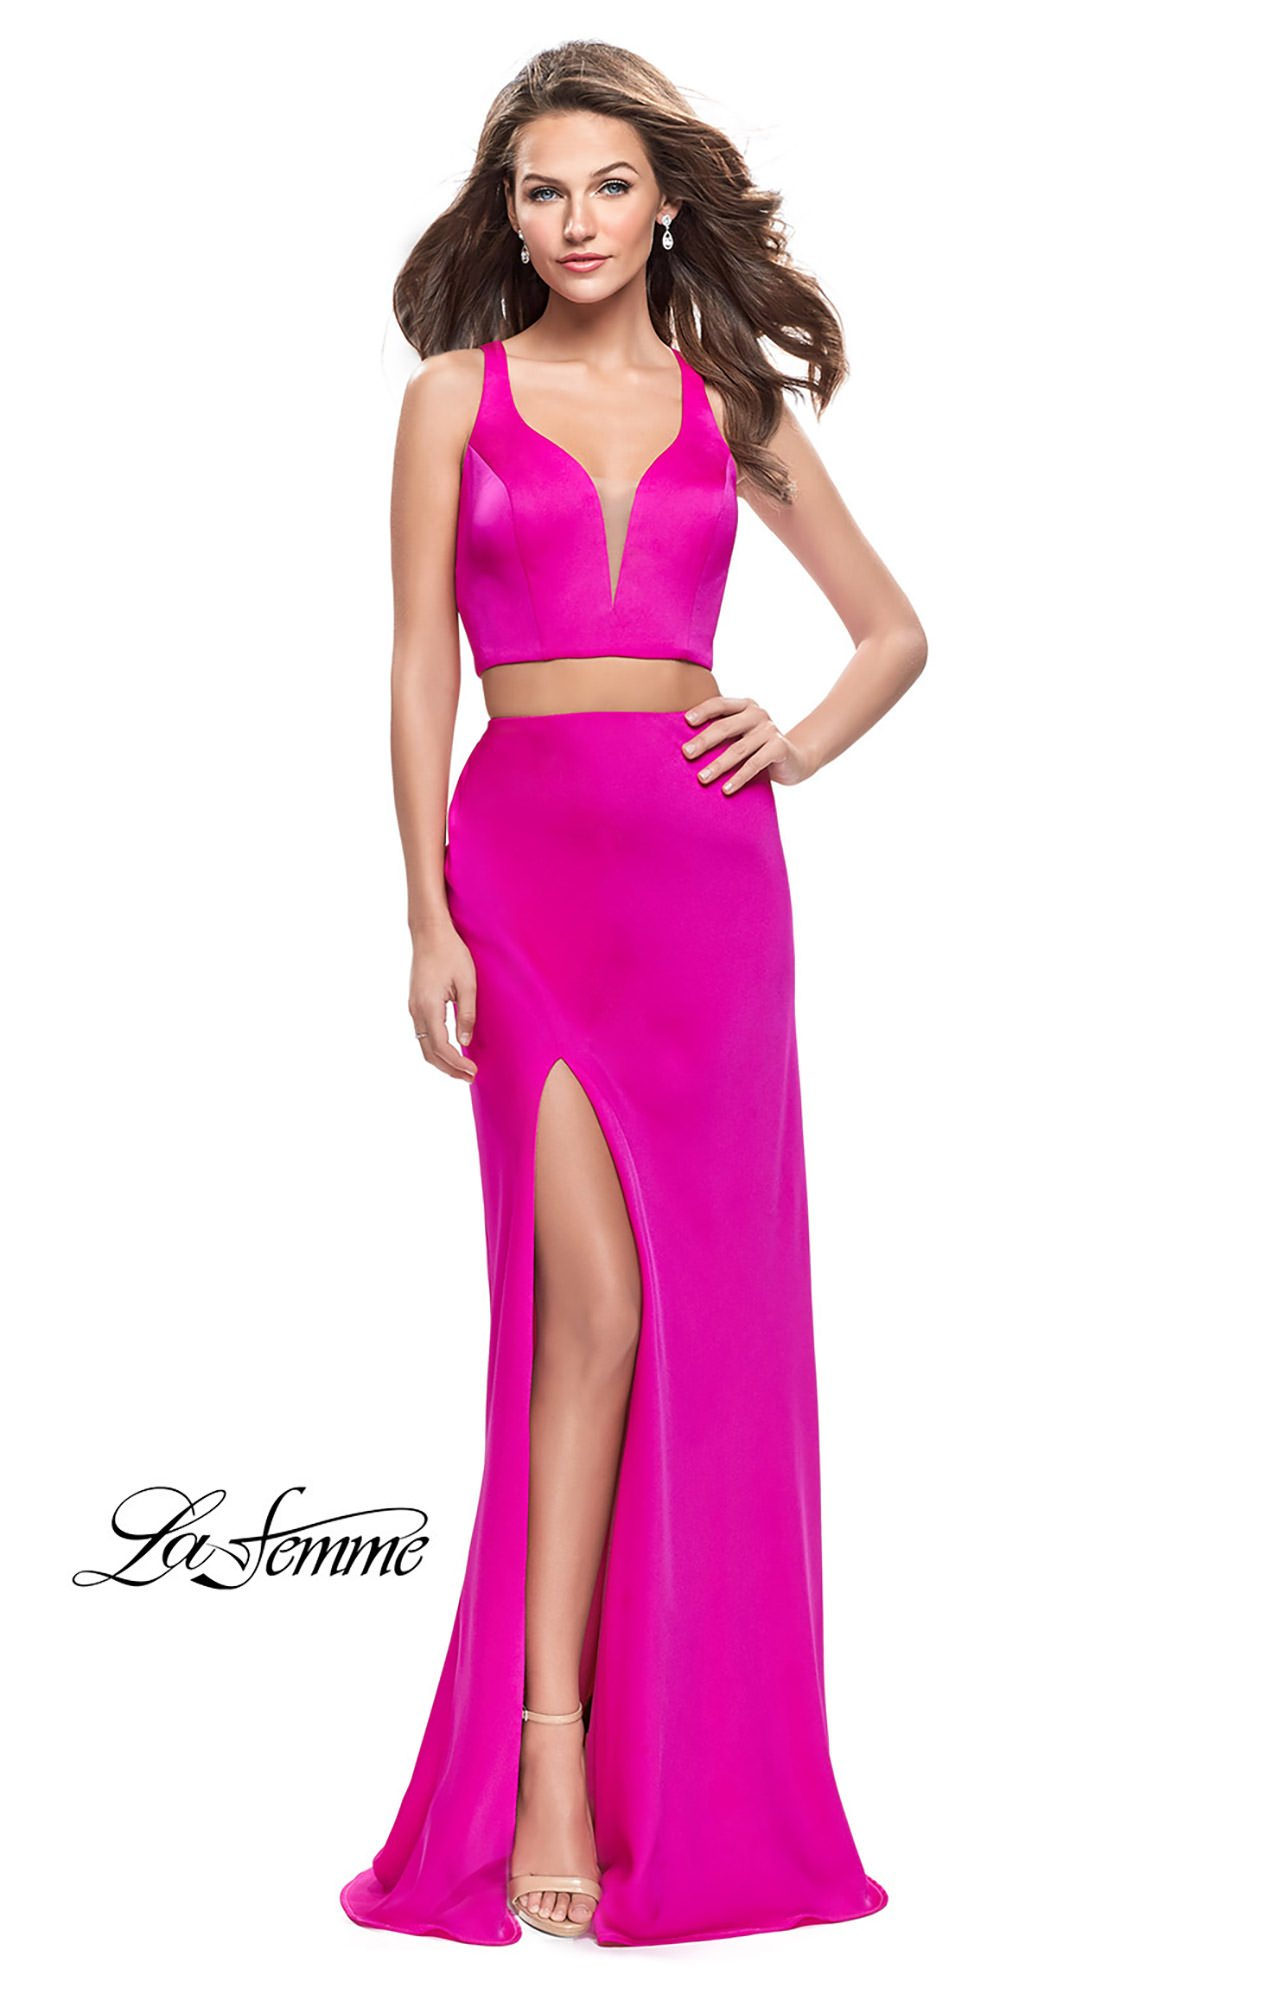 La Femme 25599 - 2 Piece Fitted Stretch Satin Prom Dress